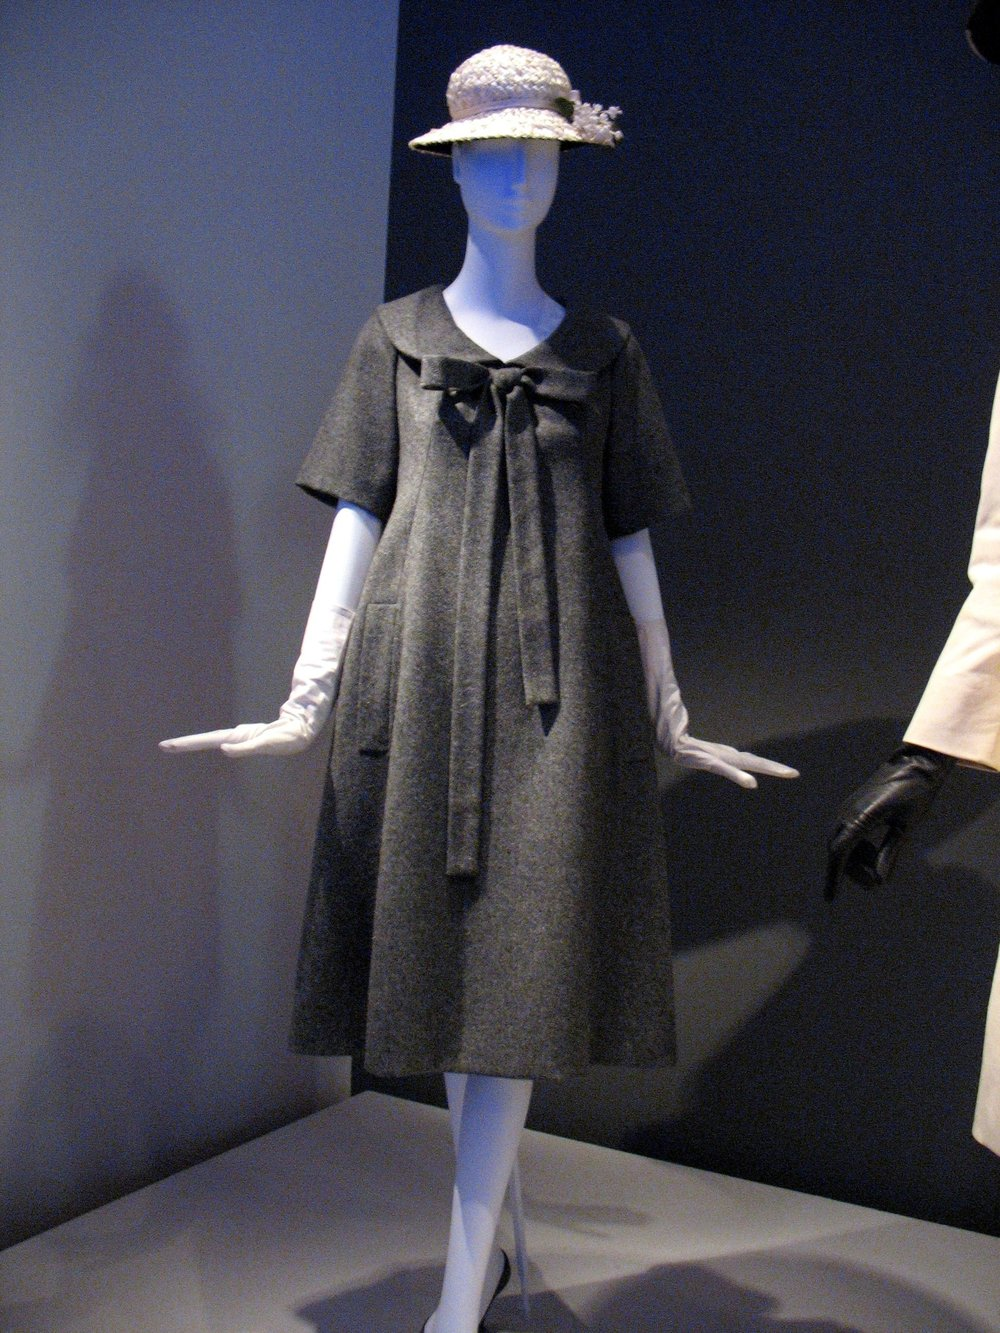 Design by Yves Saint Laurent in 1958 - Photo Courtesy of Wikimedia